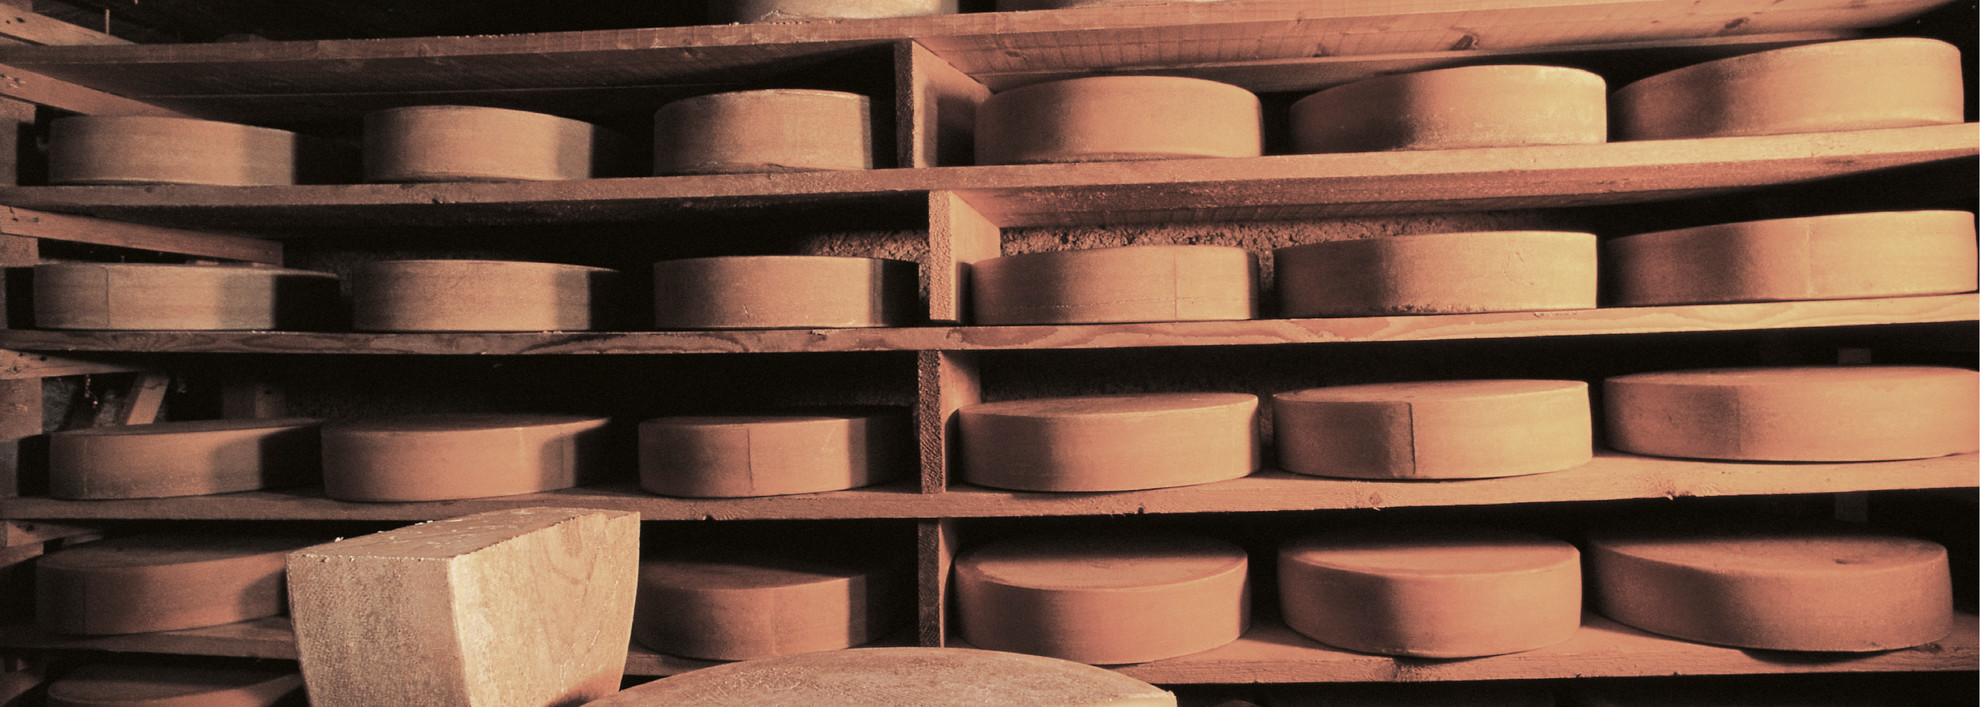 In the cheese cellar | © Kleinwalsertal Tourismus eGen |Photographer: Hans Wiesenhofer